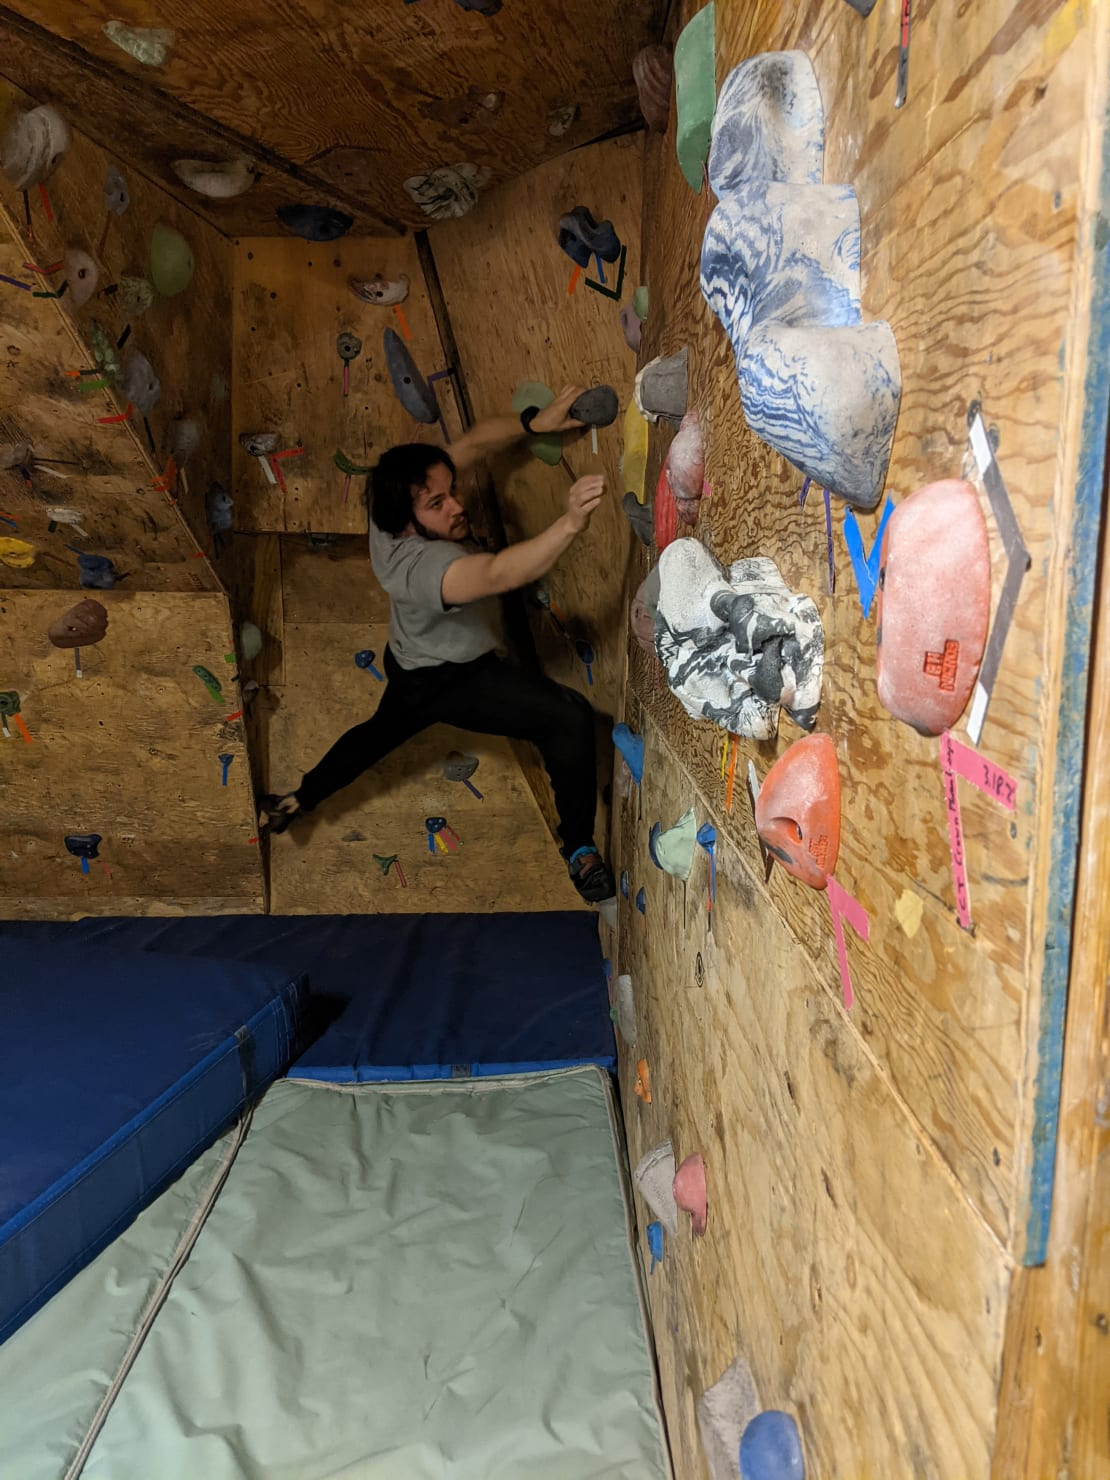 Person on rock climbing wall.